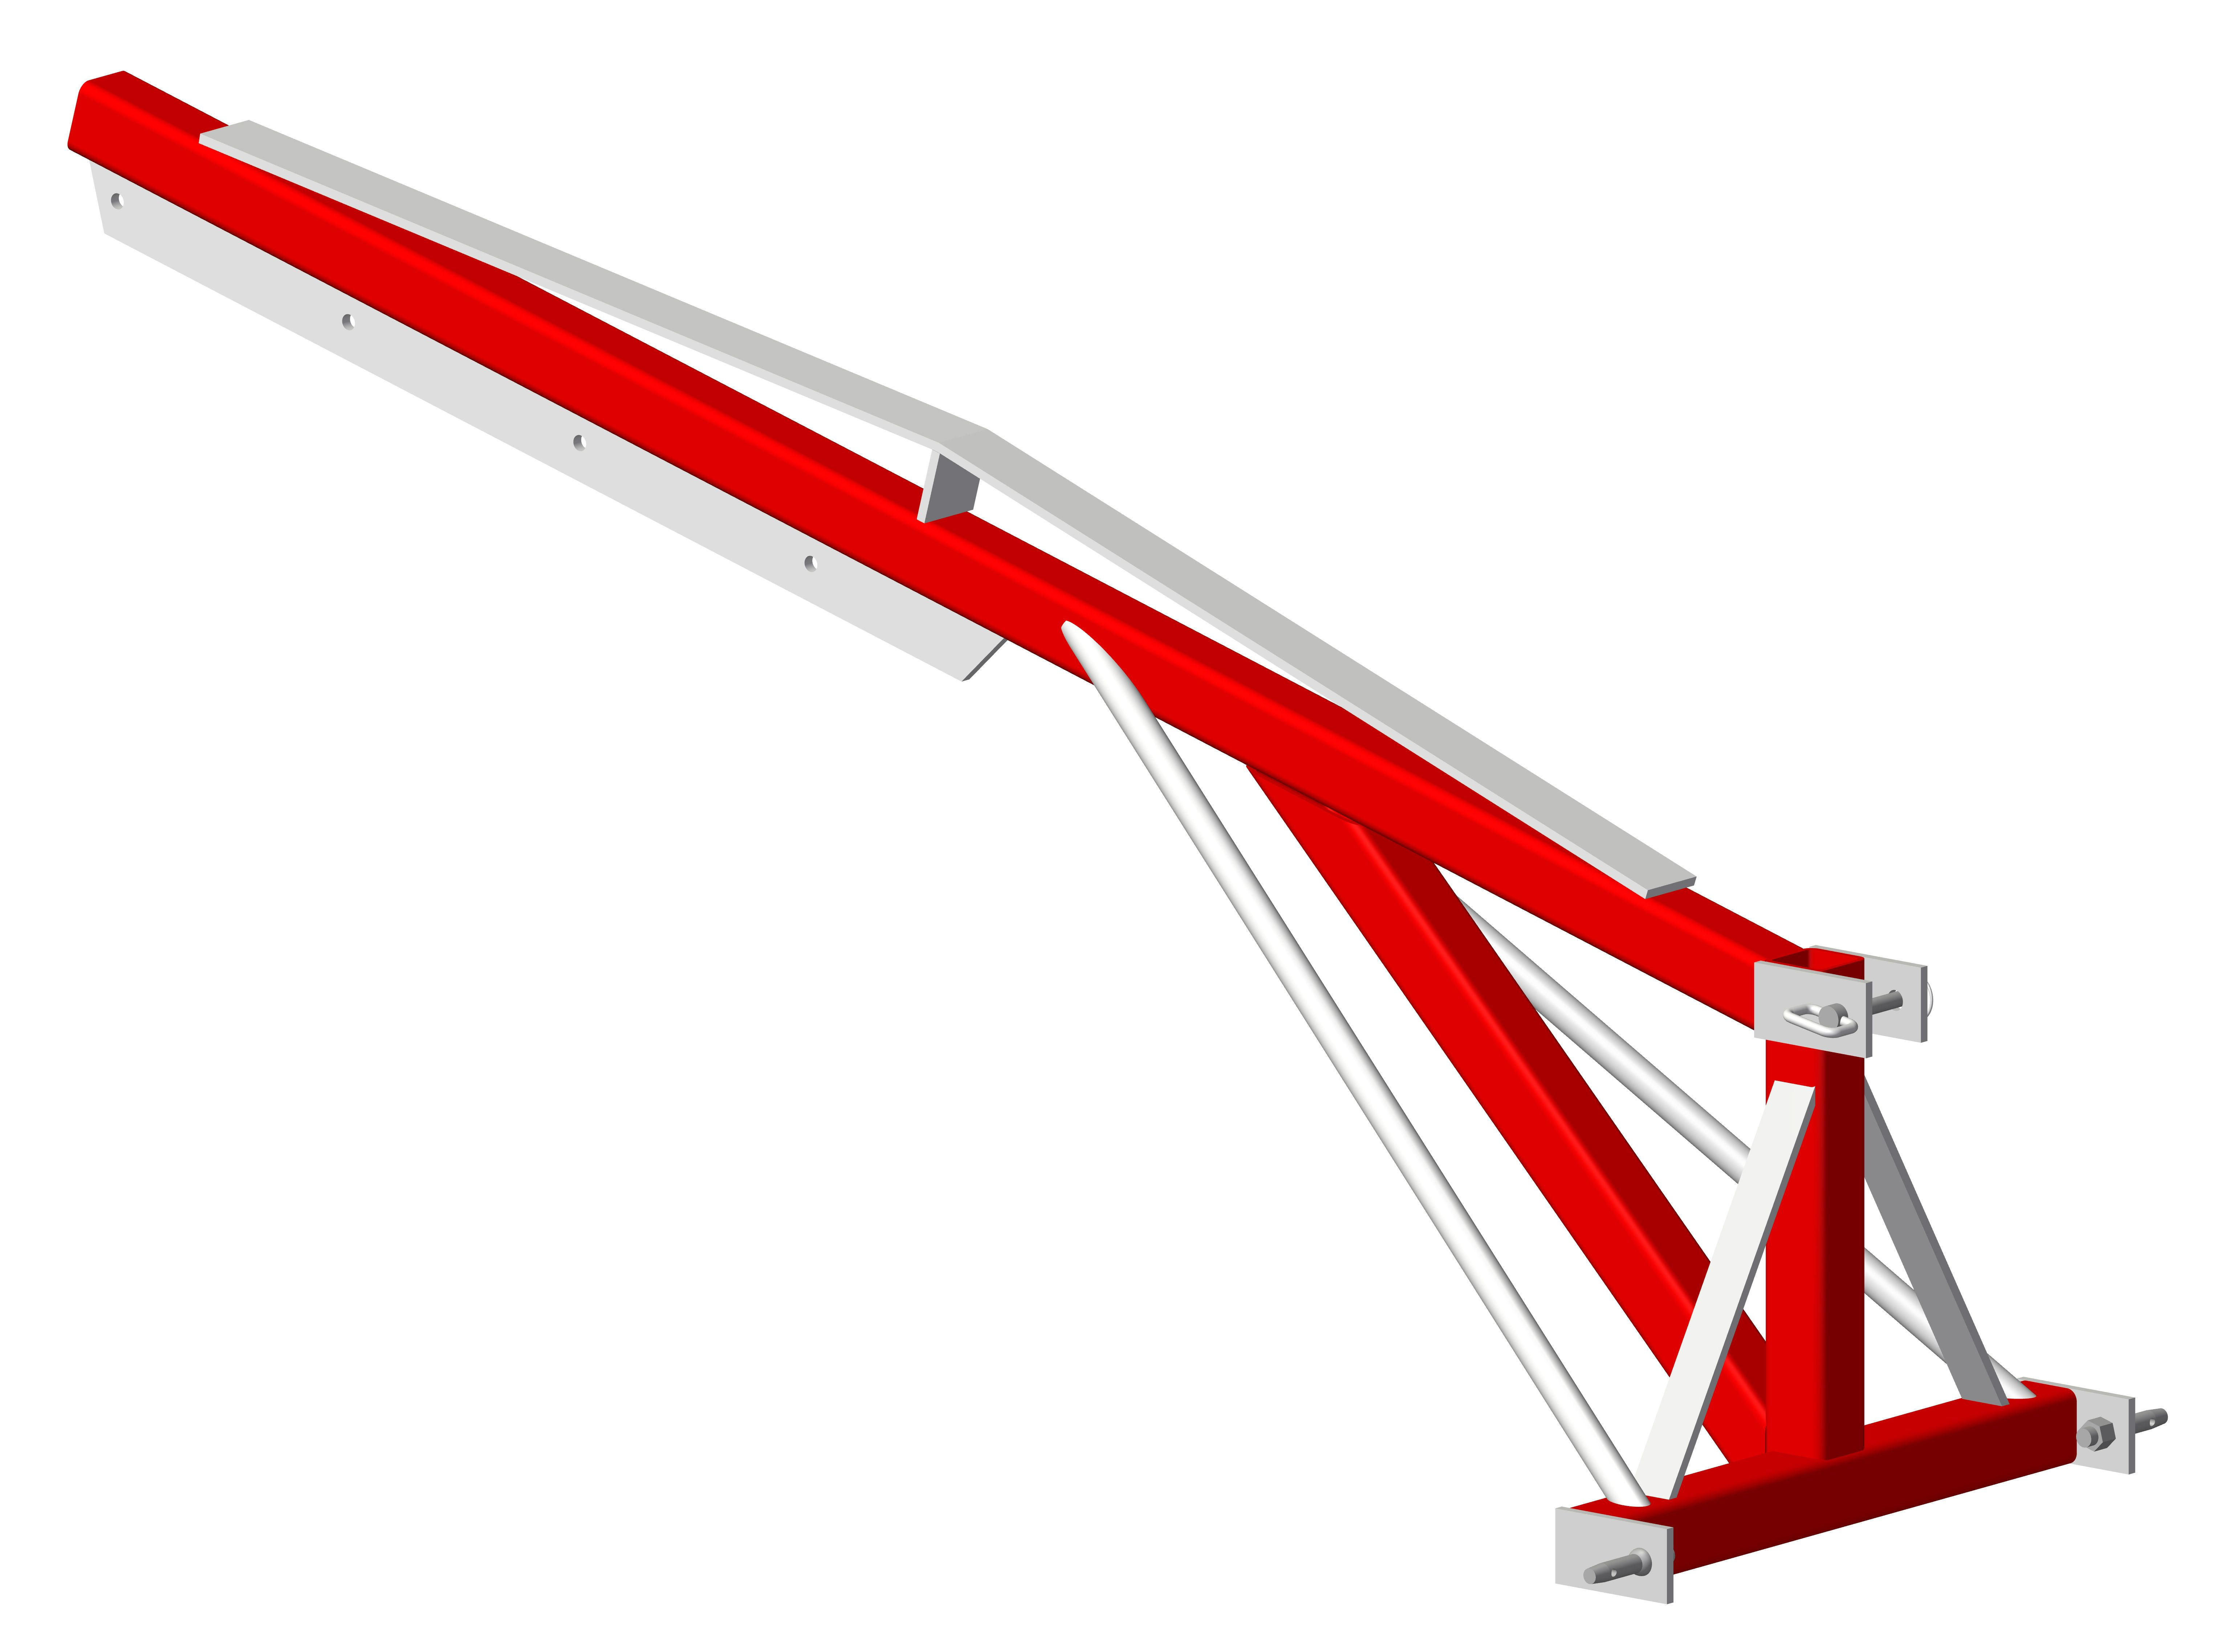 Free plans to build a homemade 3pl tractor boom or crane. in ... on homemade titanium, homemade saw, homemade plastic, homemade storage,